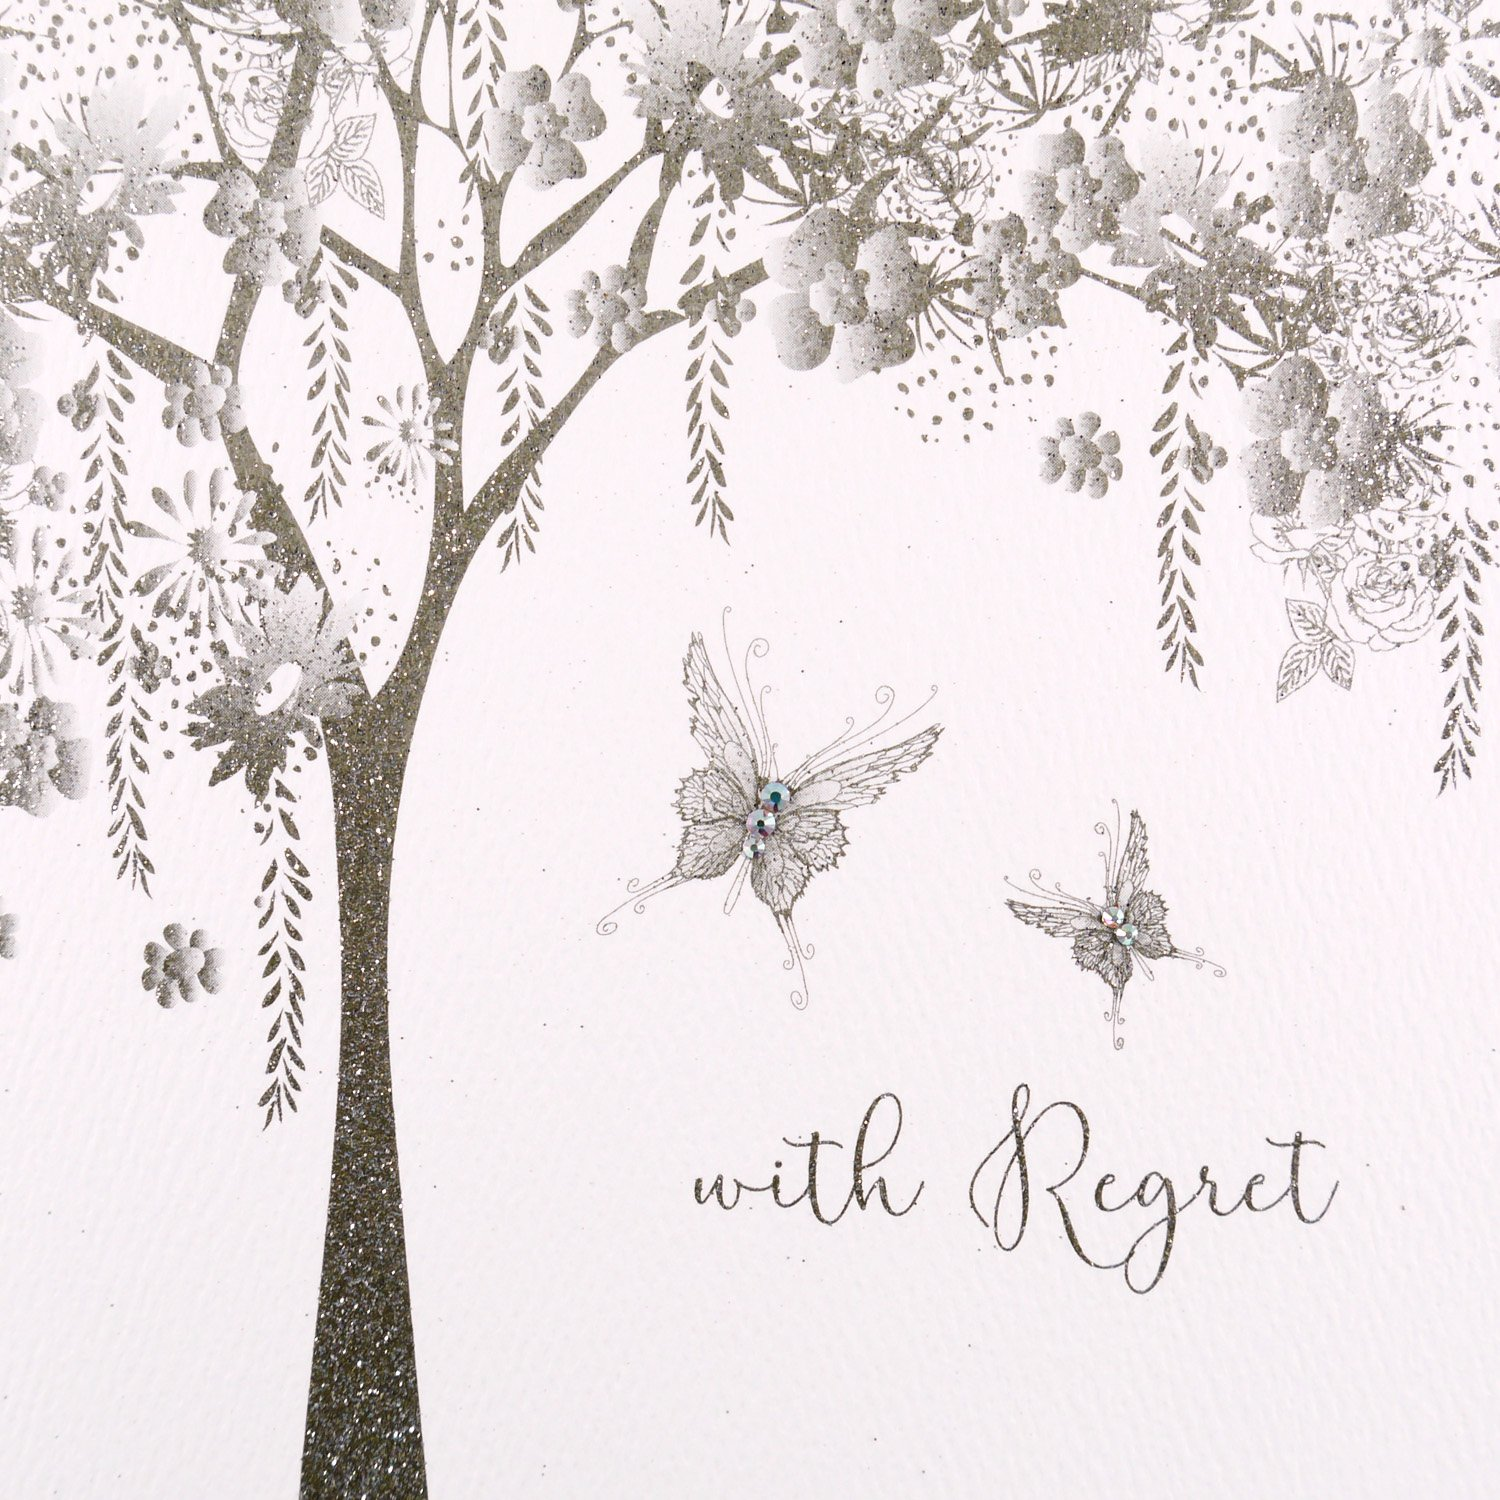 With Regret - Handmade Greeting Card / GSM18 Five Dollar Shake